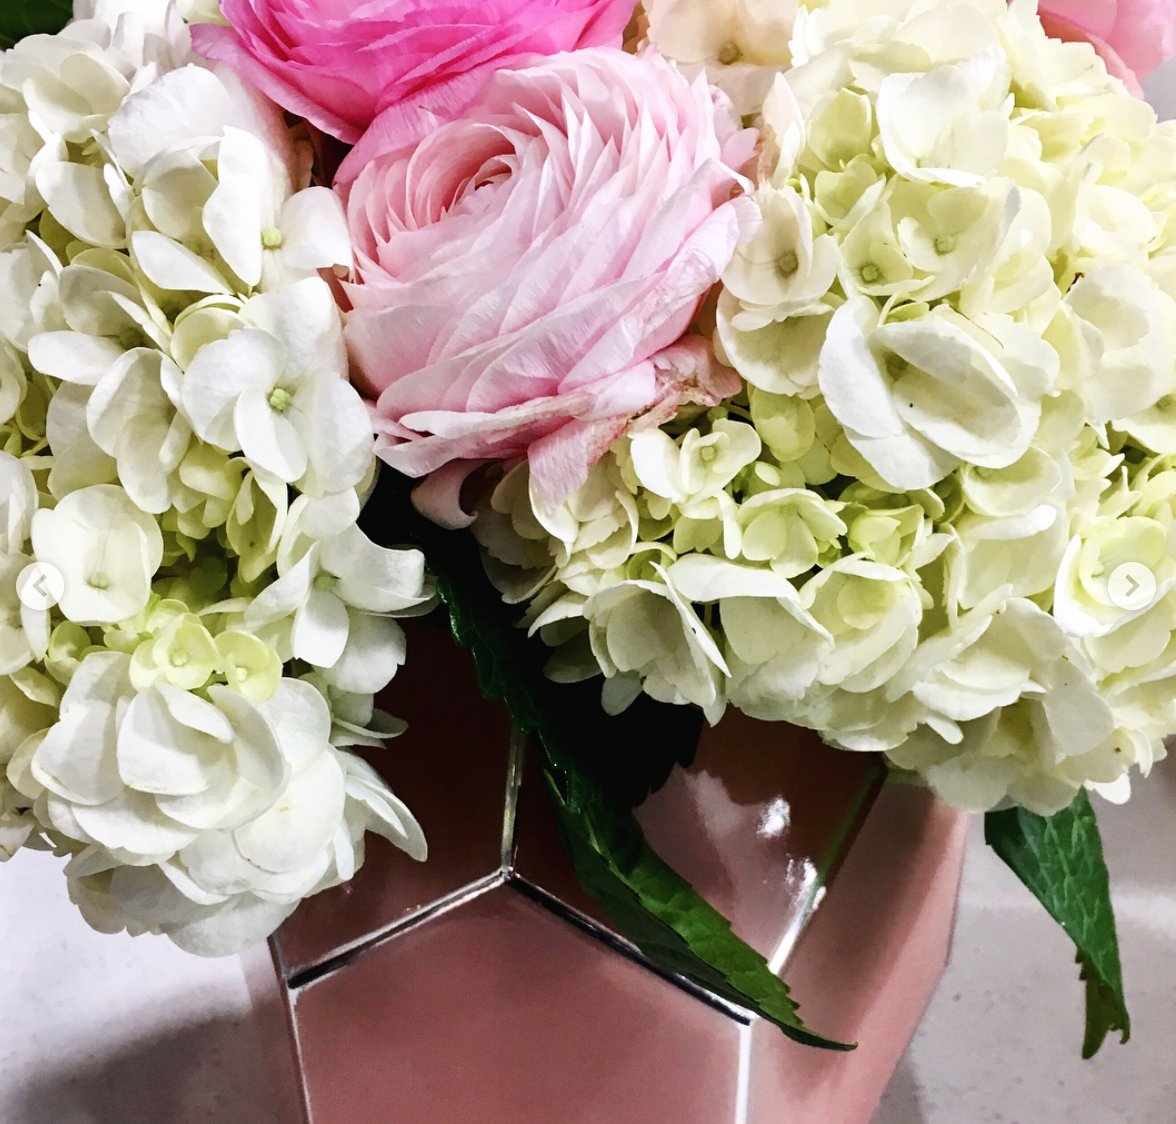 Samantha Pynn On Twitter Loved Talking About Easy Floral